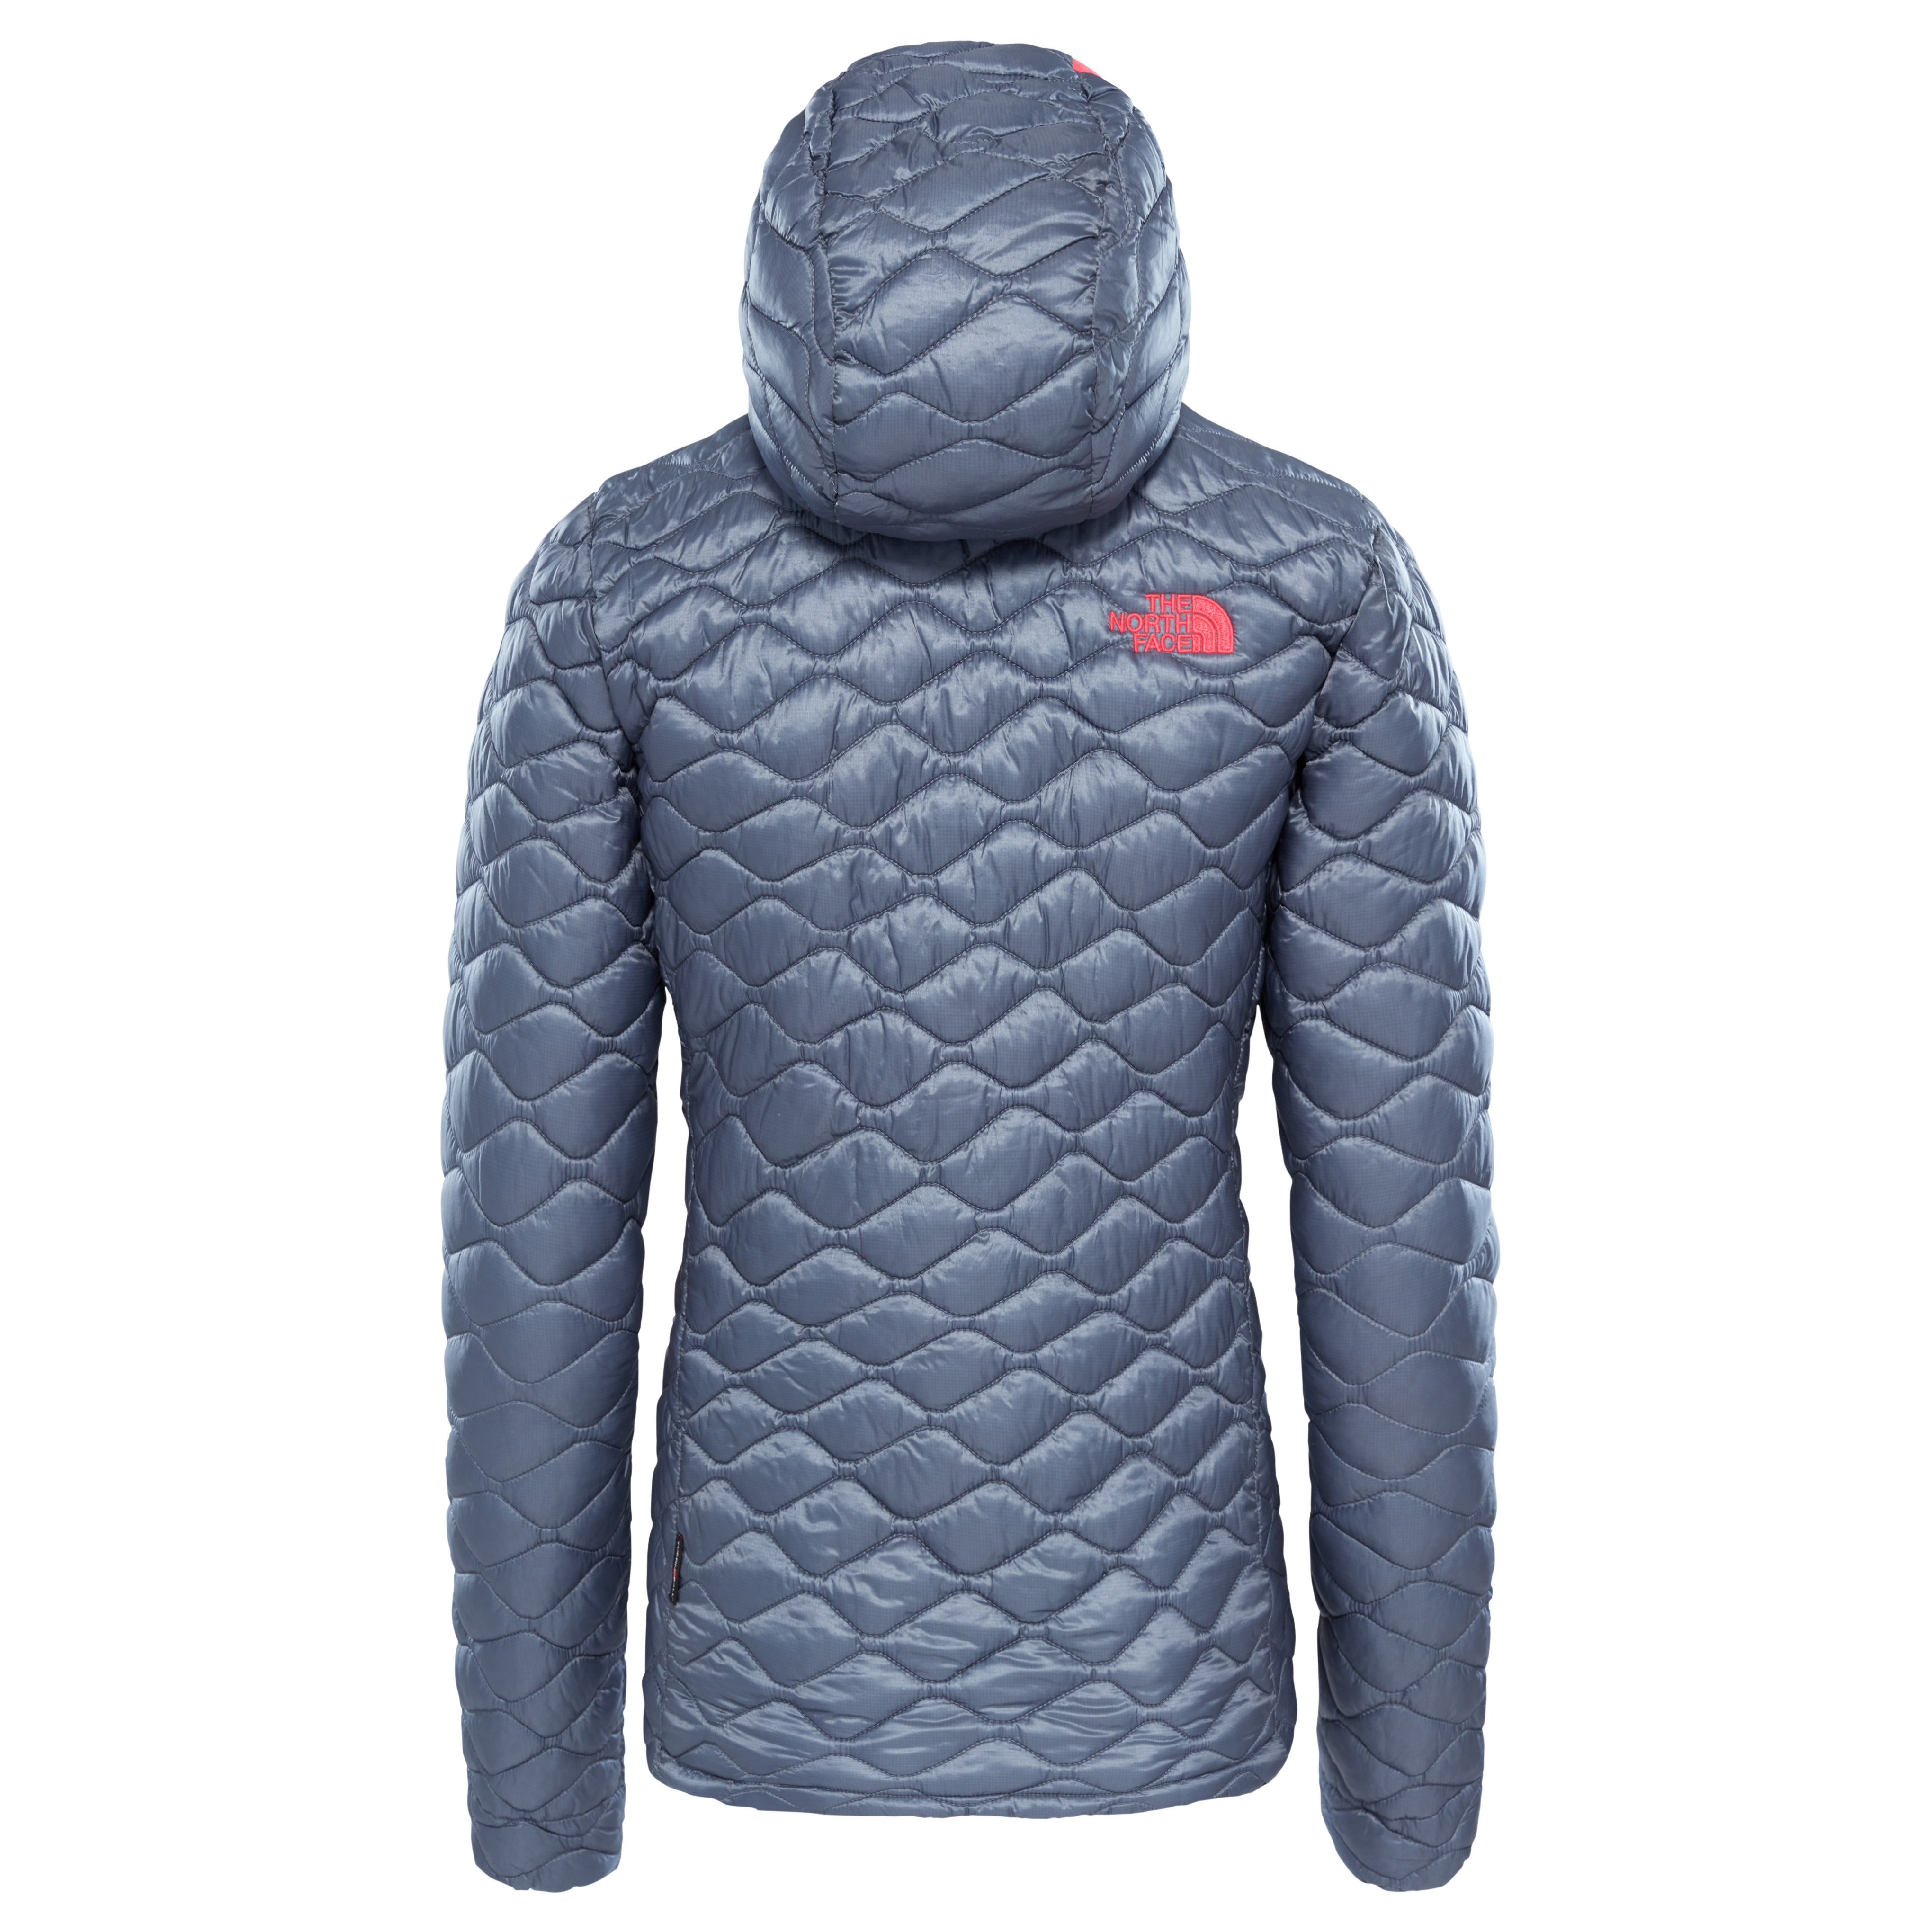 THE NORTH FACE W THERMOBALL PRO HOODIE - gallery 1 bcd997d7645f